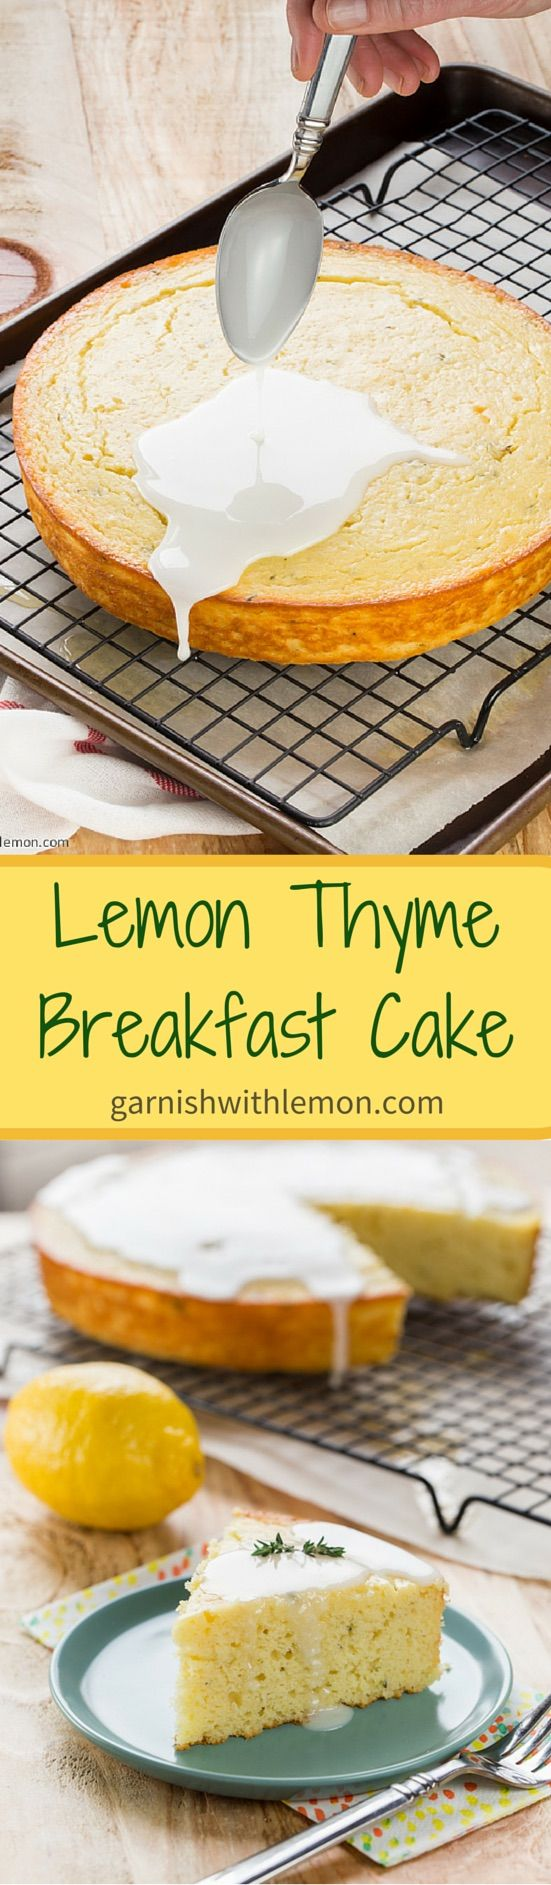 Lemon Thyme Breakfast Cake ~ Celebrate the arrival of Spring! http://www.garnishwithlemon.com